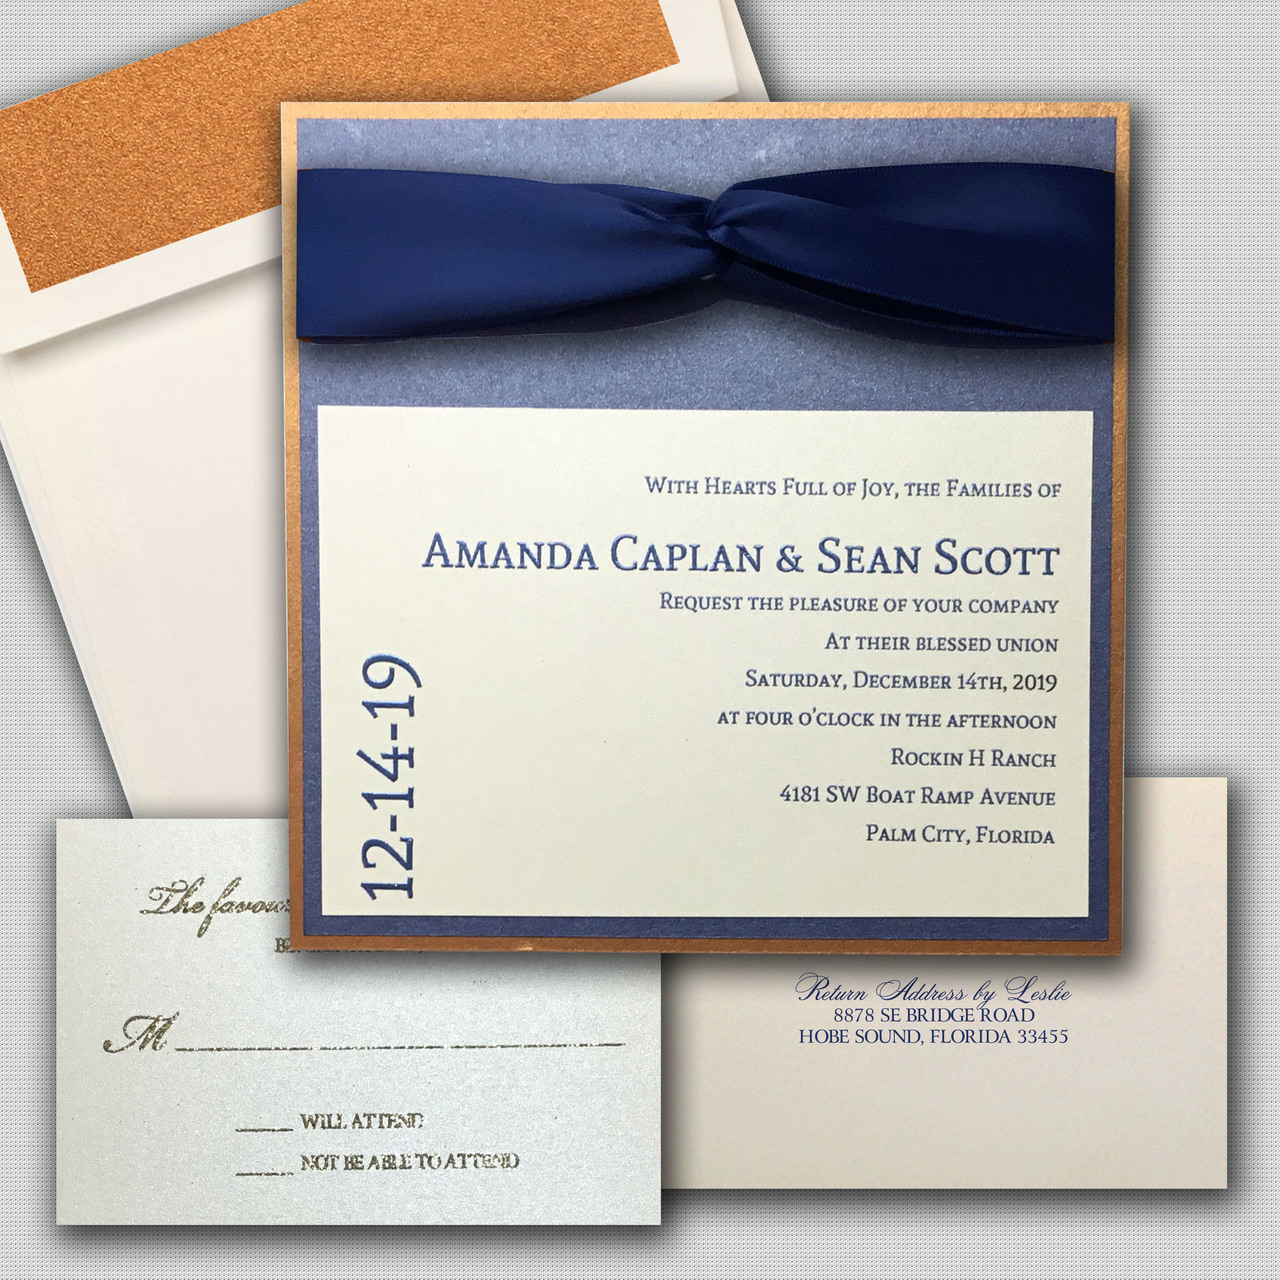 Leslie Store Wedding Invitations & Stationery image 15